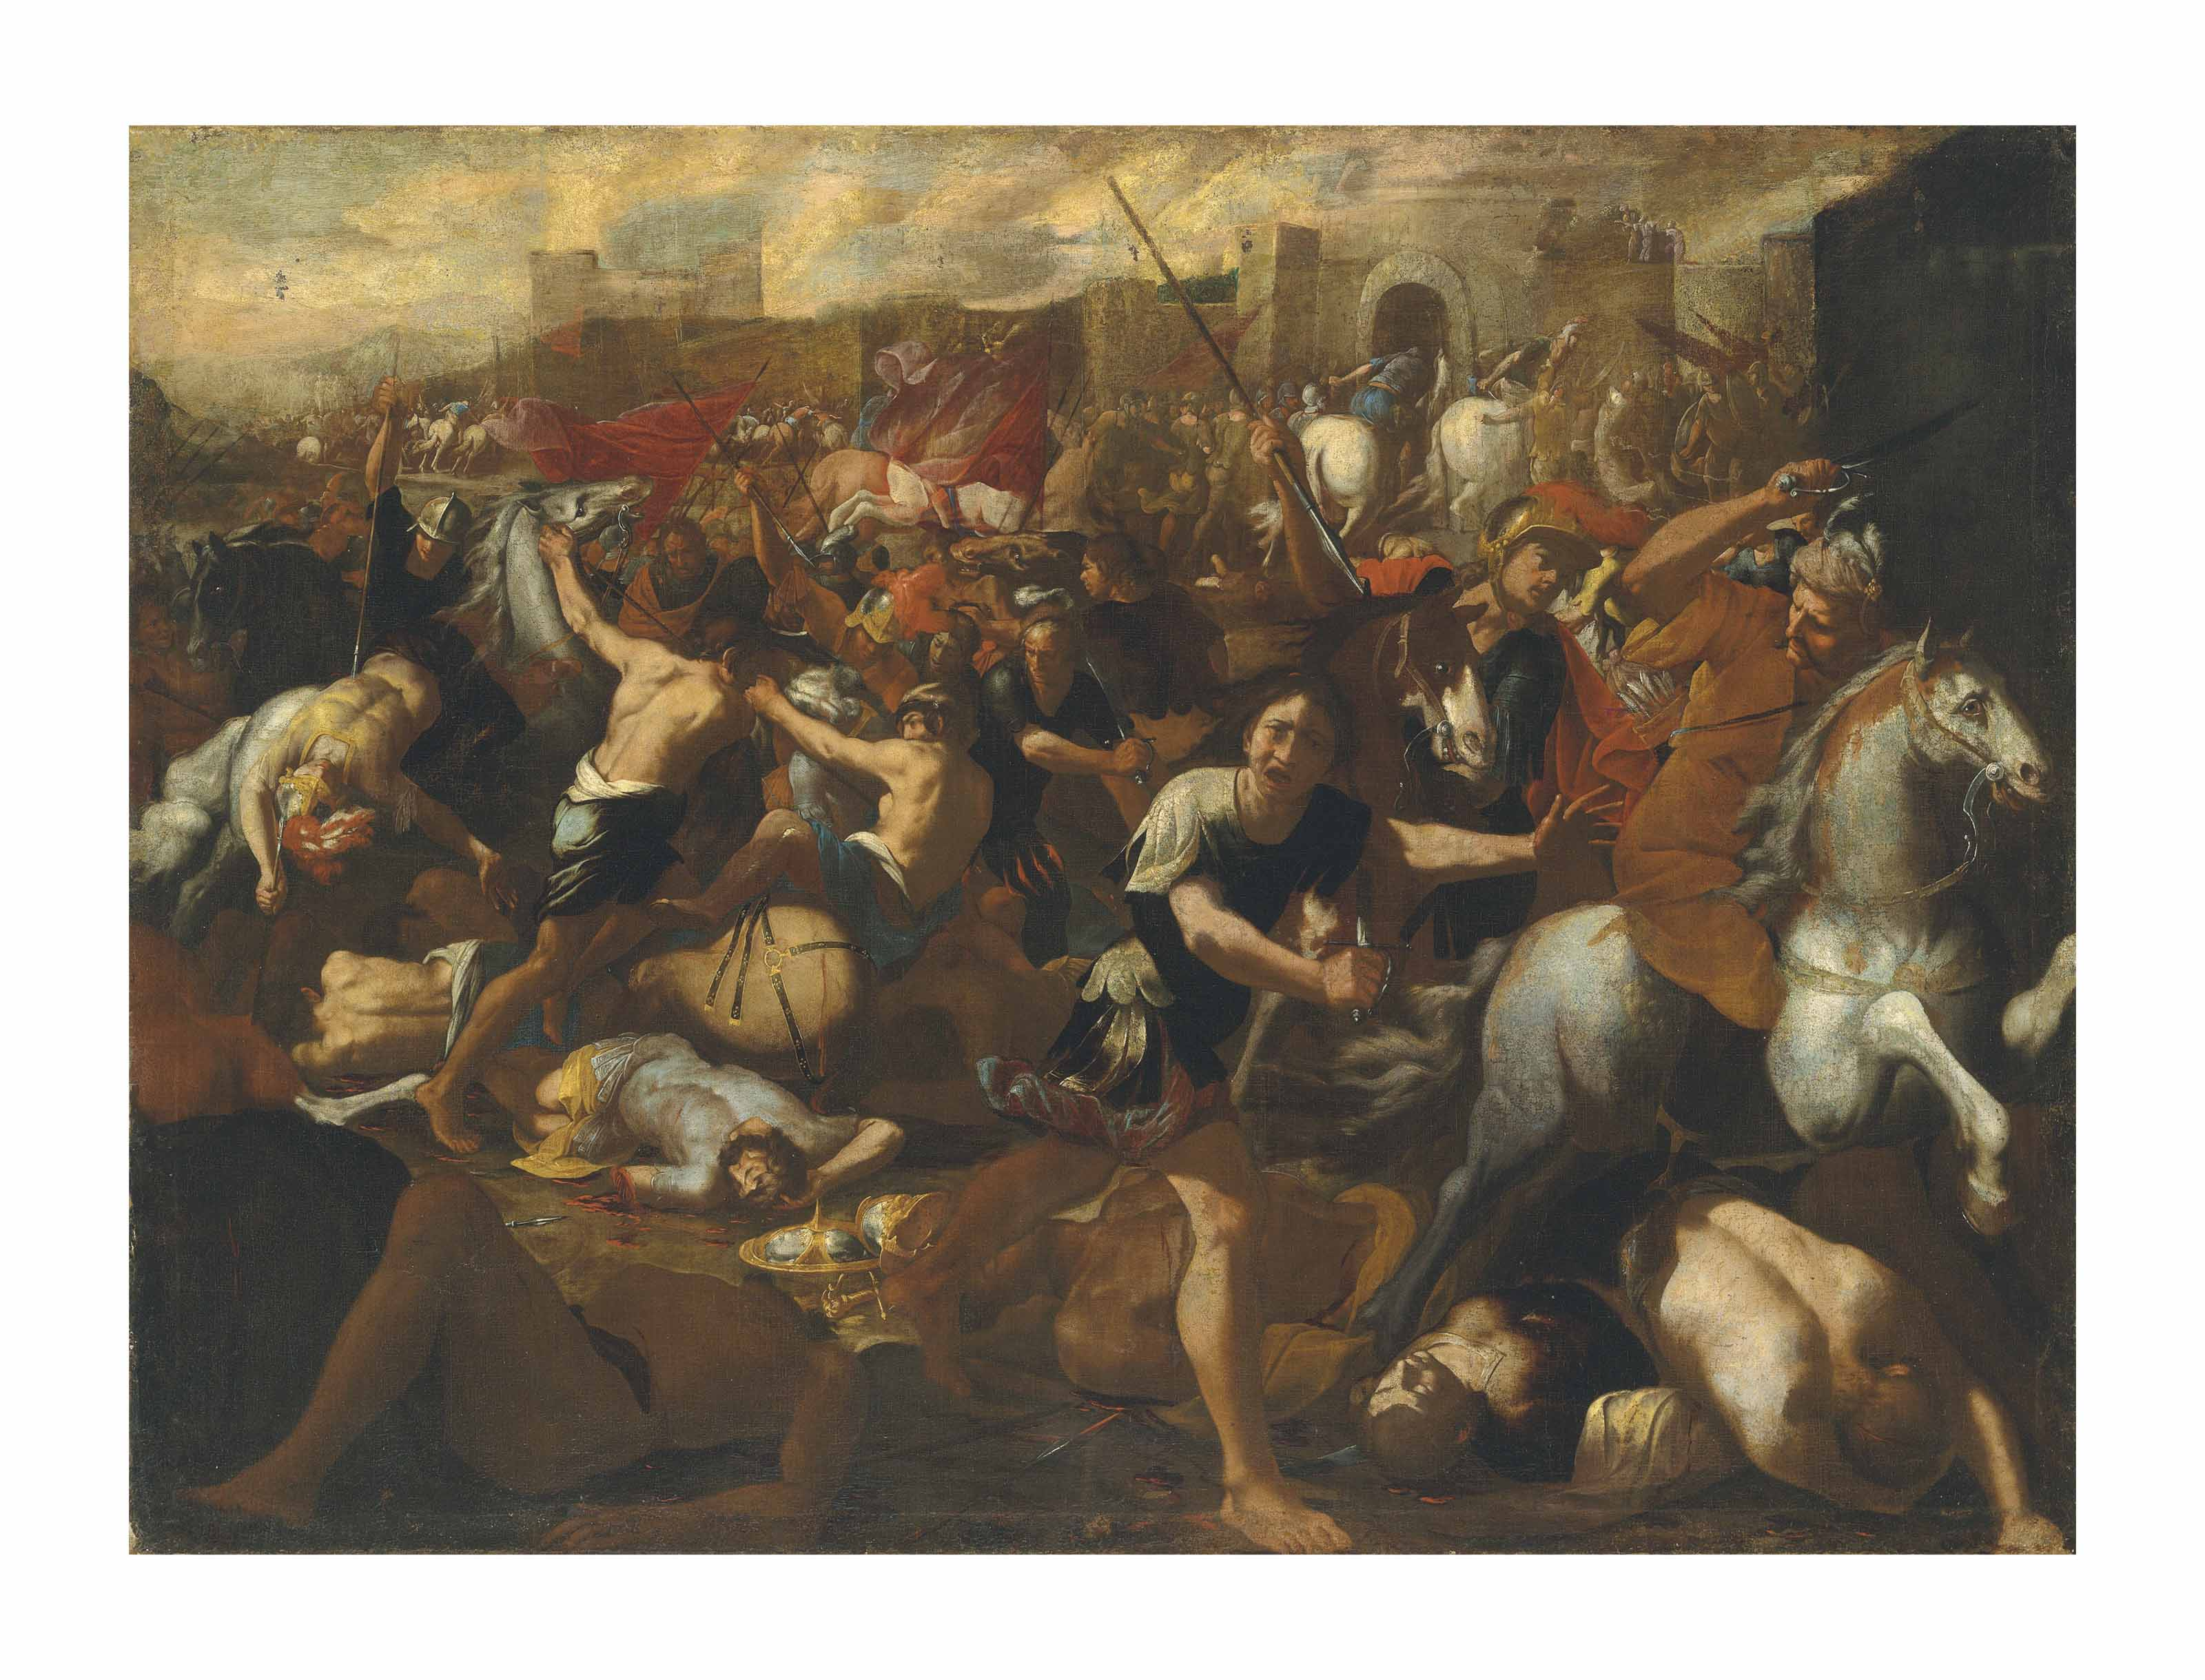 The Battle between the Israelites and the Amalekites overlooked by Moses, his arms held aloft by Aaron and Hur